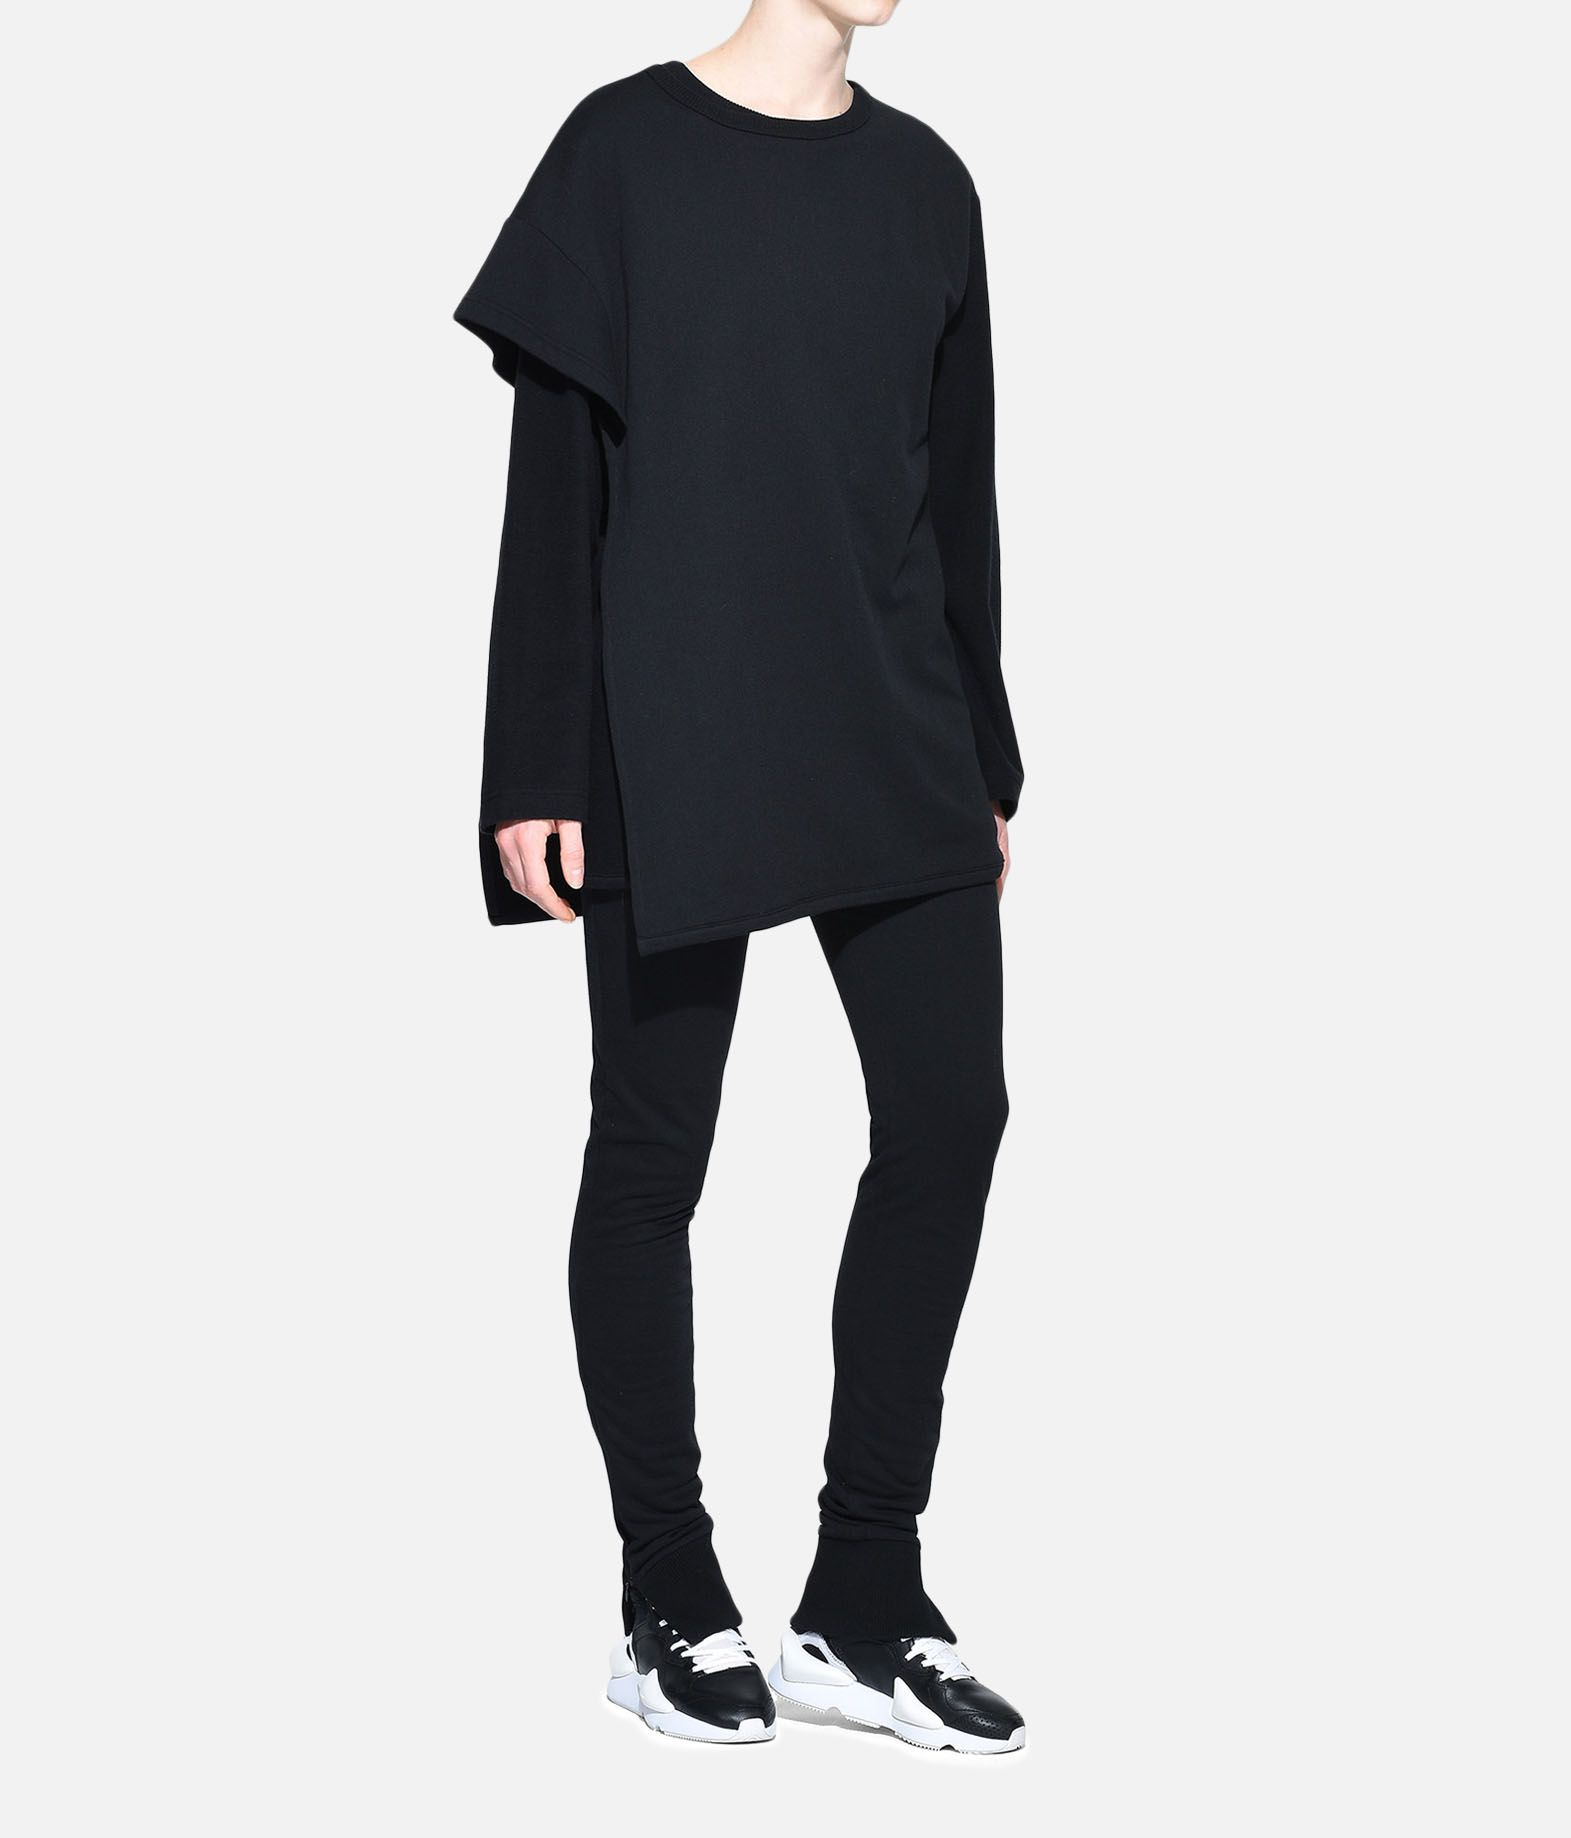 Y-3 Y-3 Two-Layer Fleece Sweater Sweatshirt Woman a